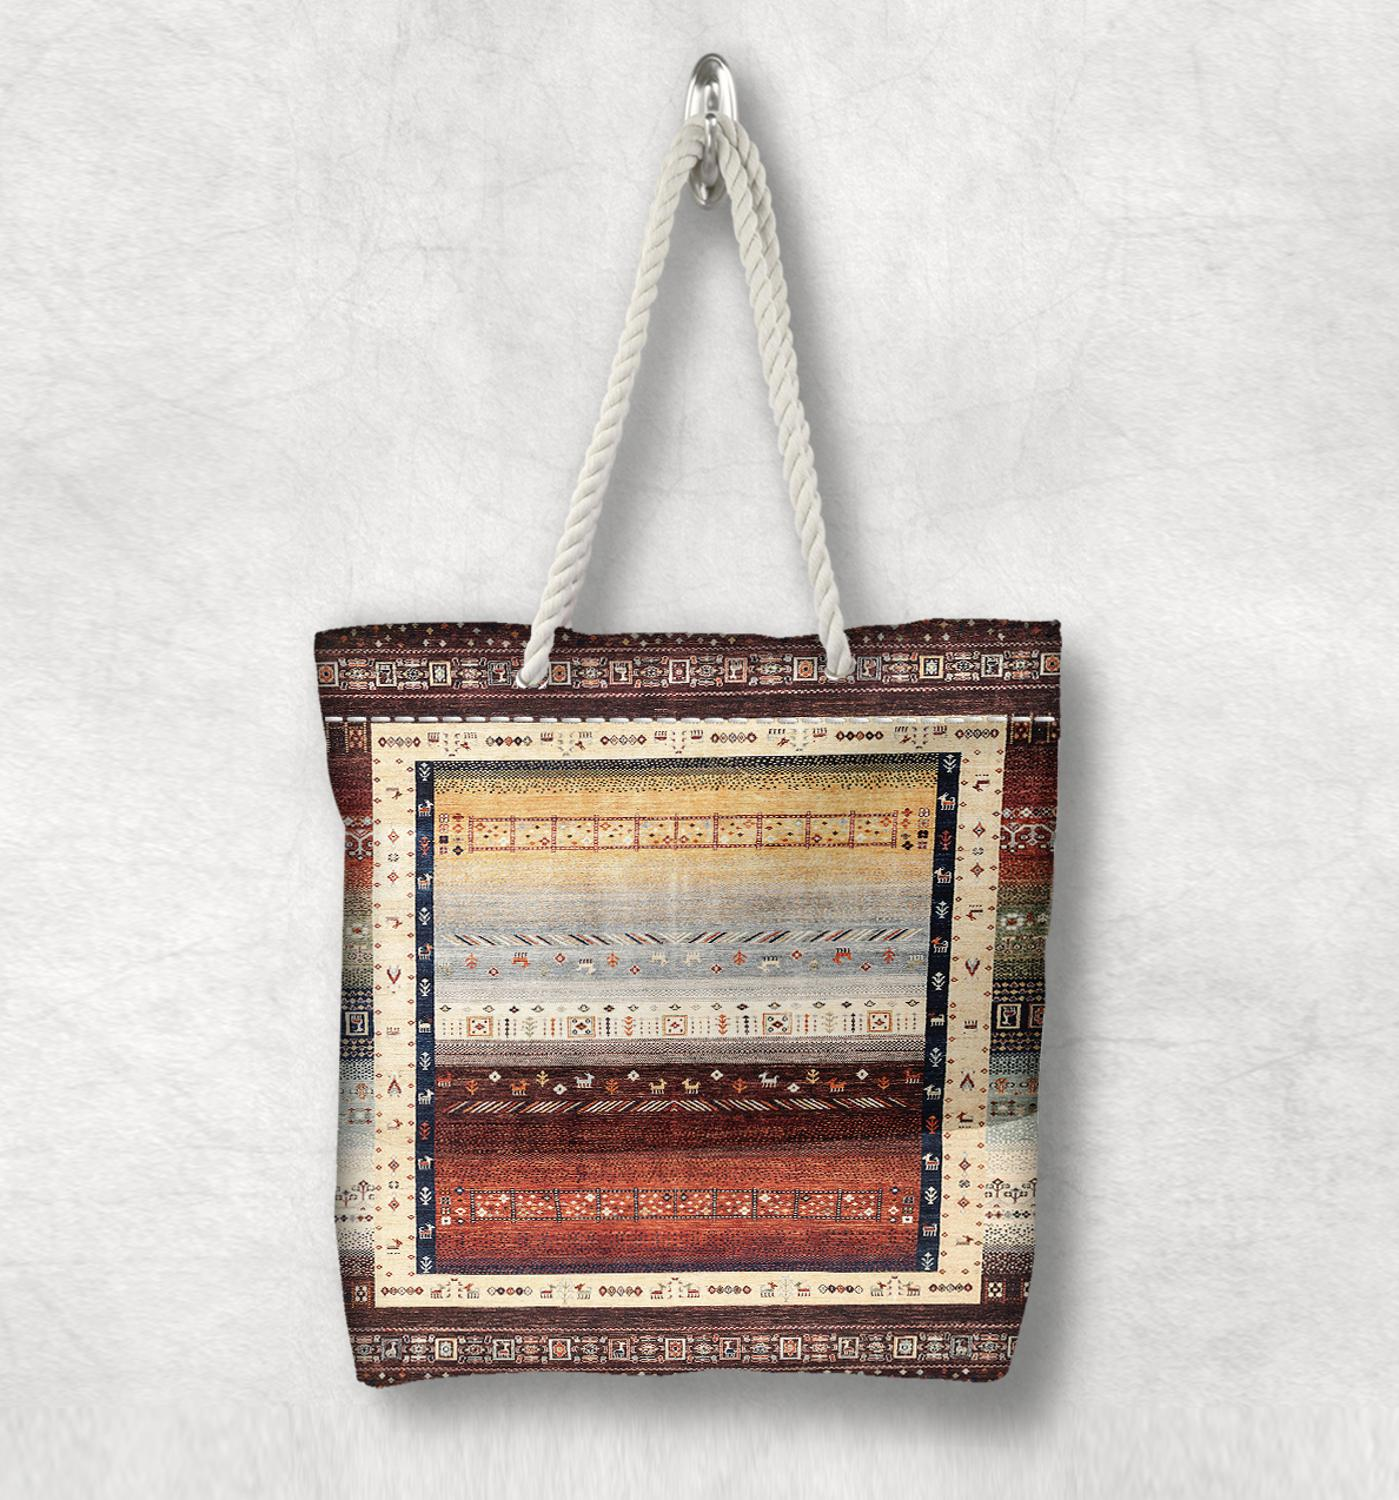 Else Beige Brown Gray Retro Anatolia Antique Kilim White Rope Handle Canvas Bag Cotton Canvas Zippered Tote Bag Shoulder Bag